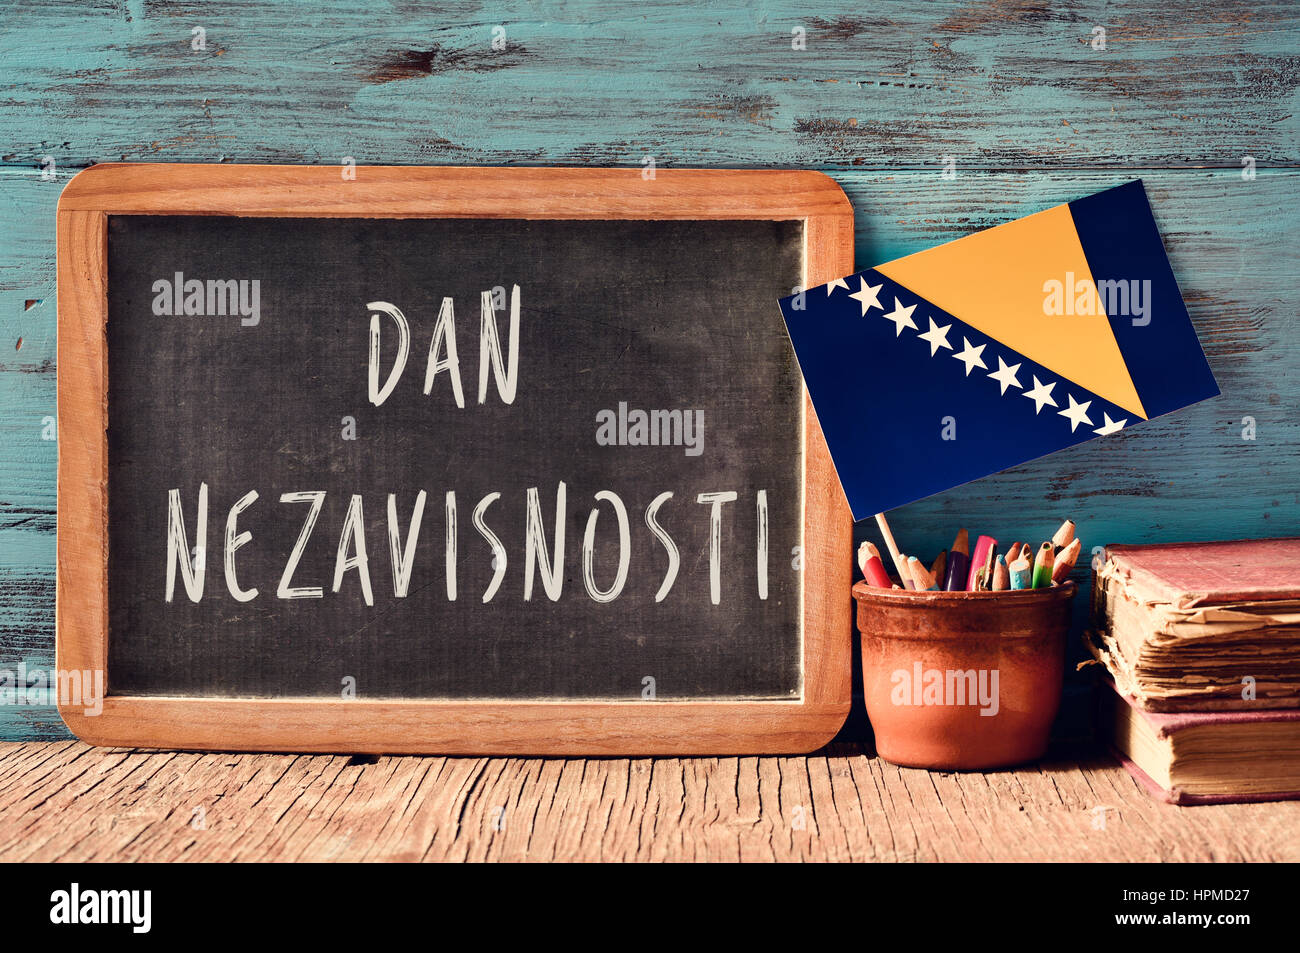 a chalkboard with the text Dan Nezavisnosti, Independence Day written in Bosnian, a pot with pencils, some books - Stock Image